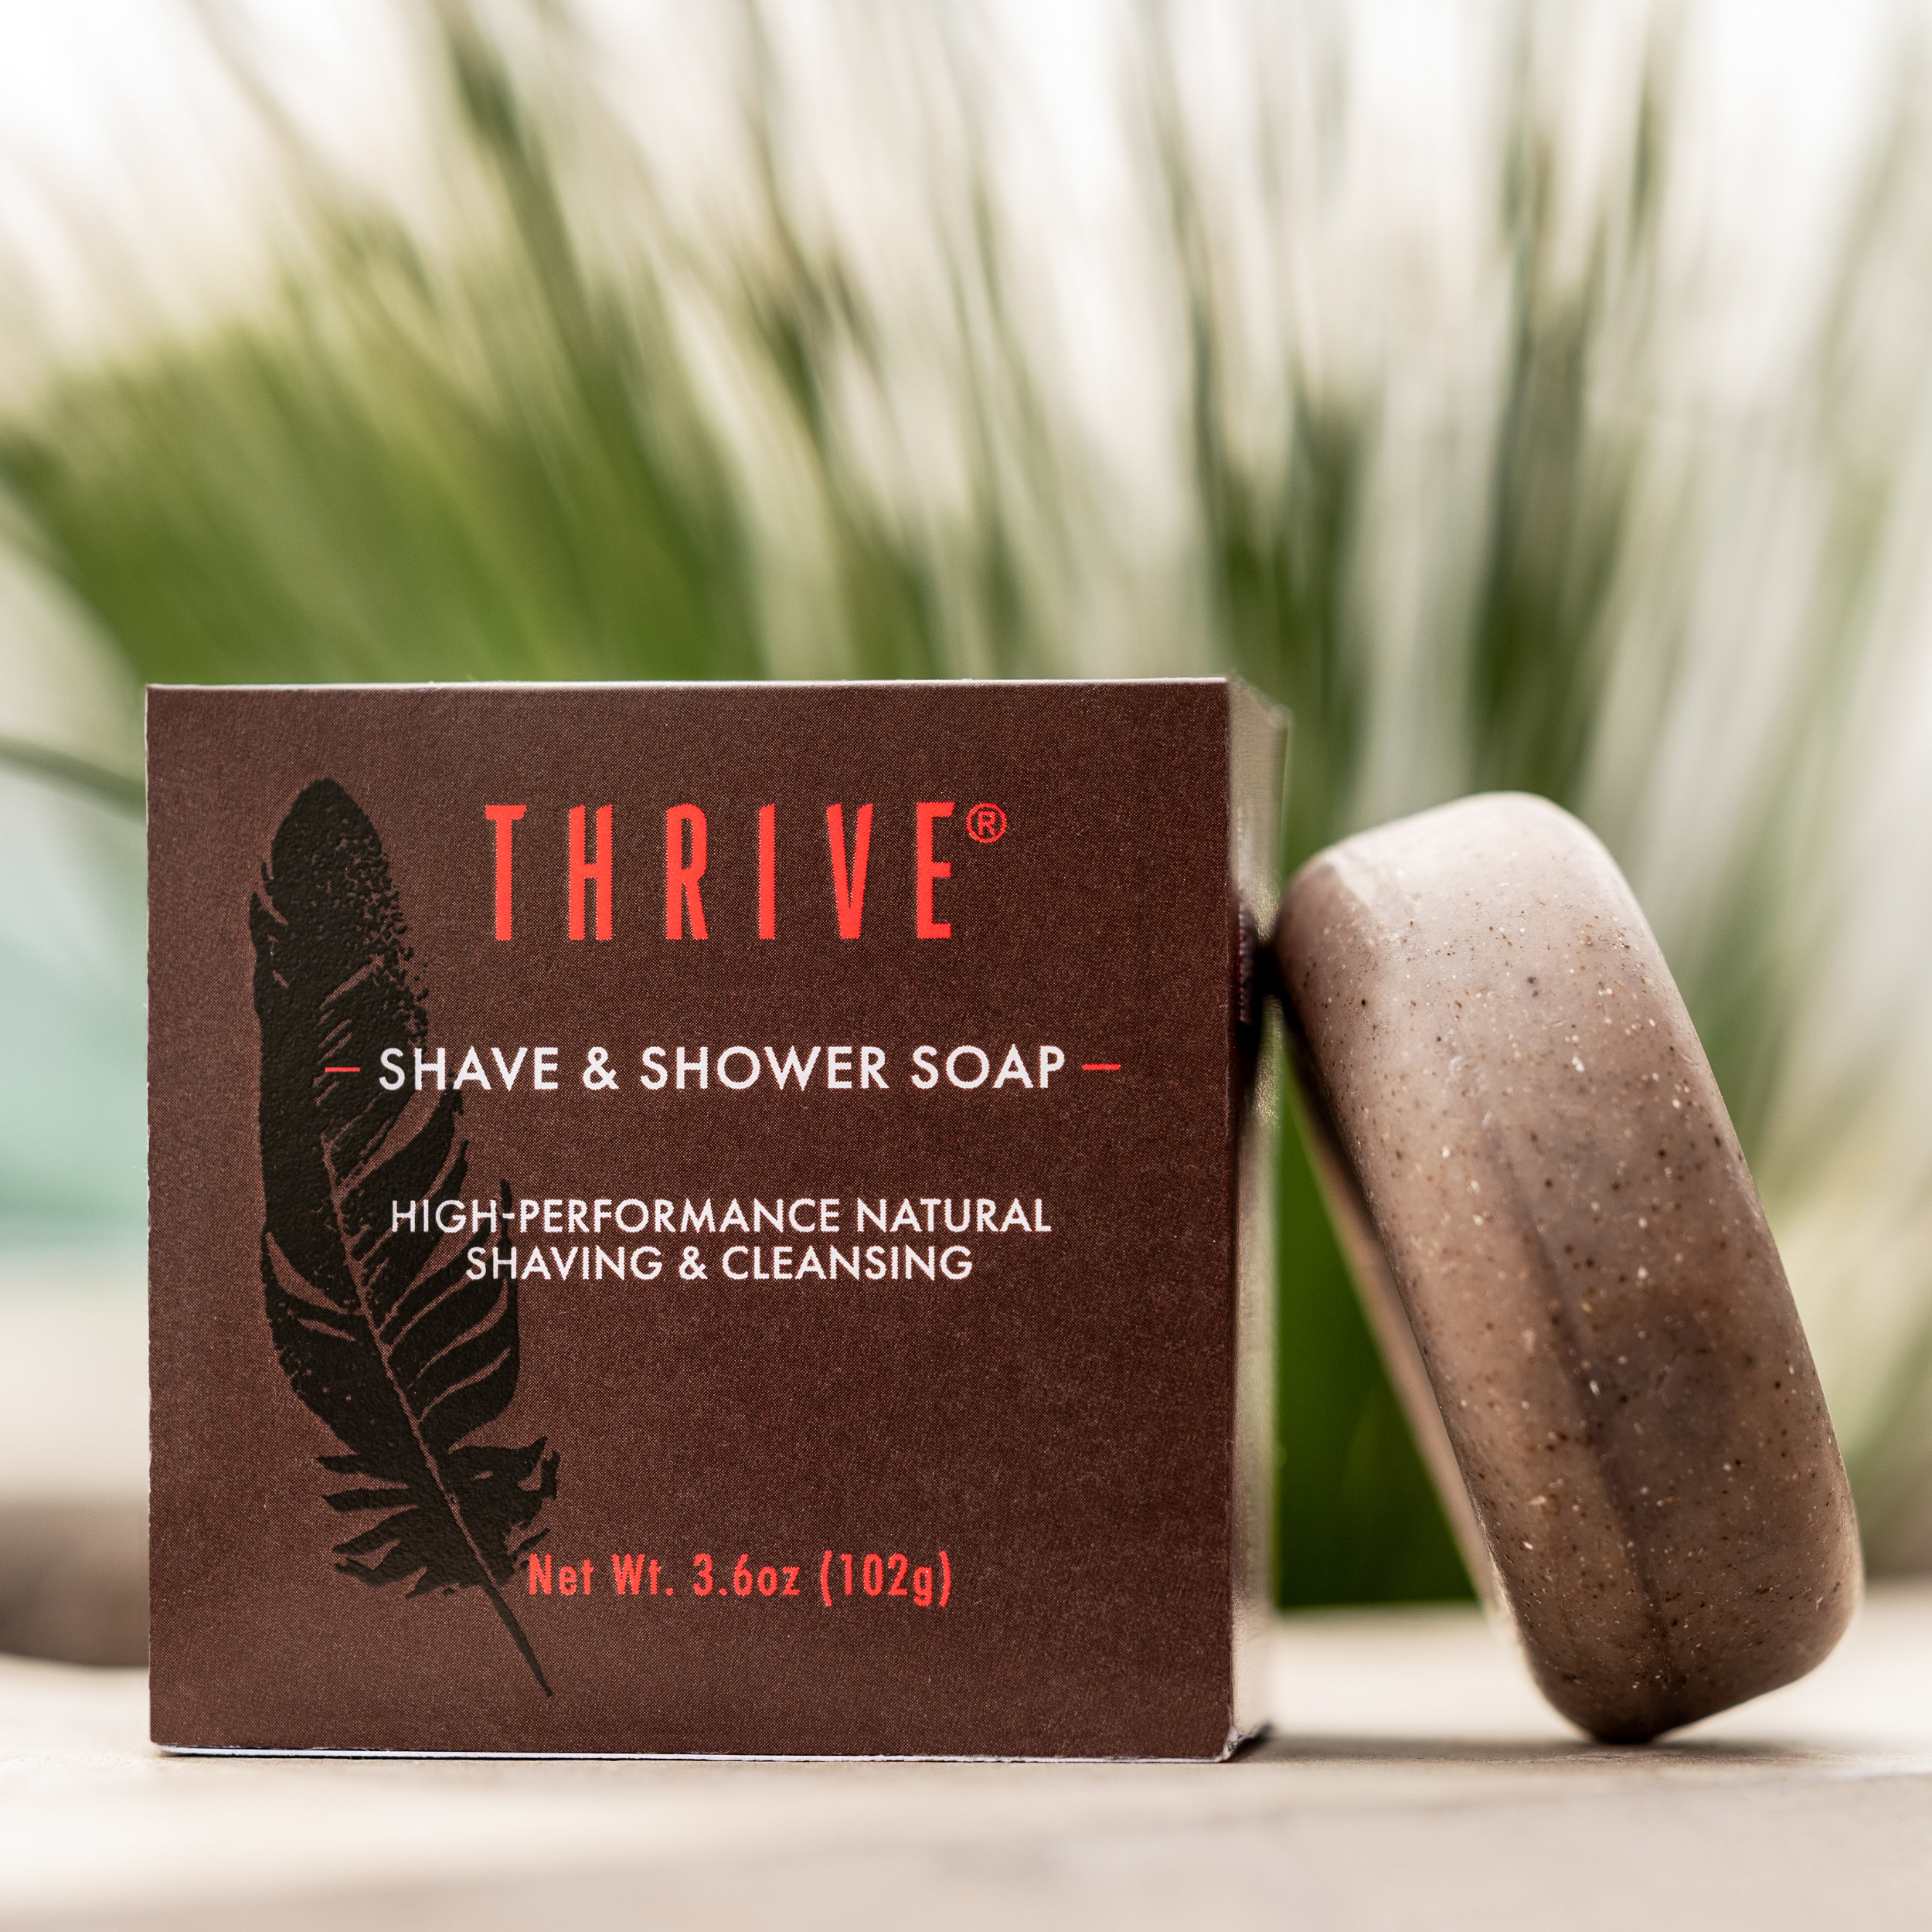 Thrive_SSS_Box_and_Bar_plant3_RM_v1a_sRGB_8bit.jpg